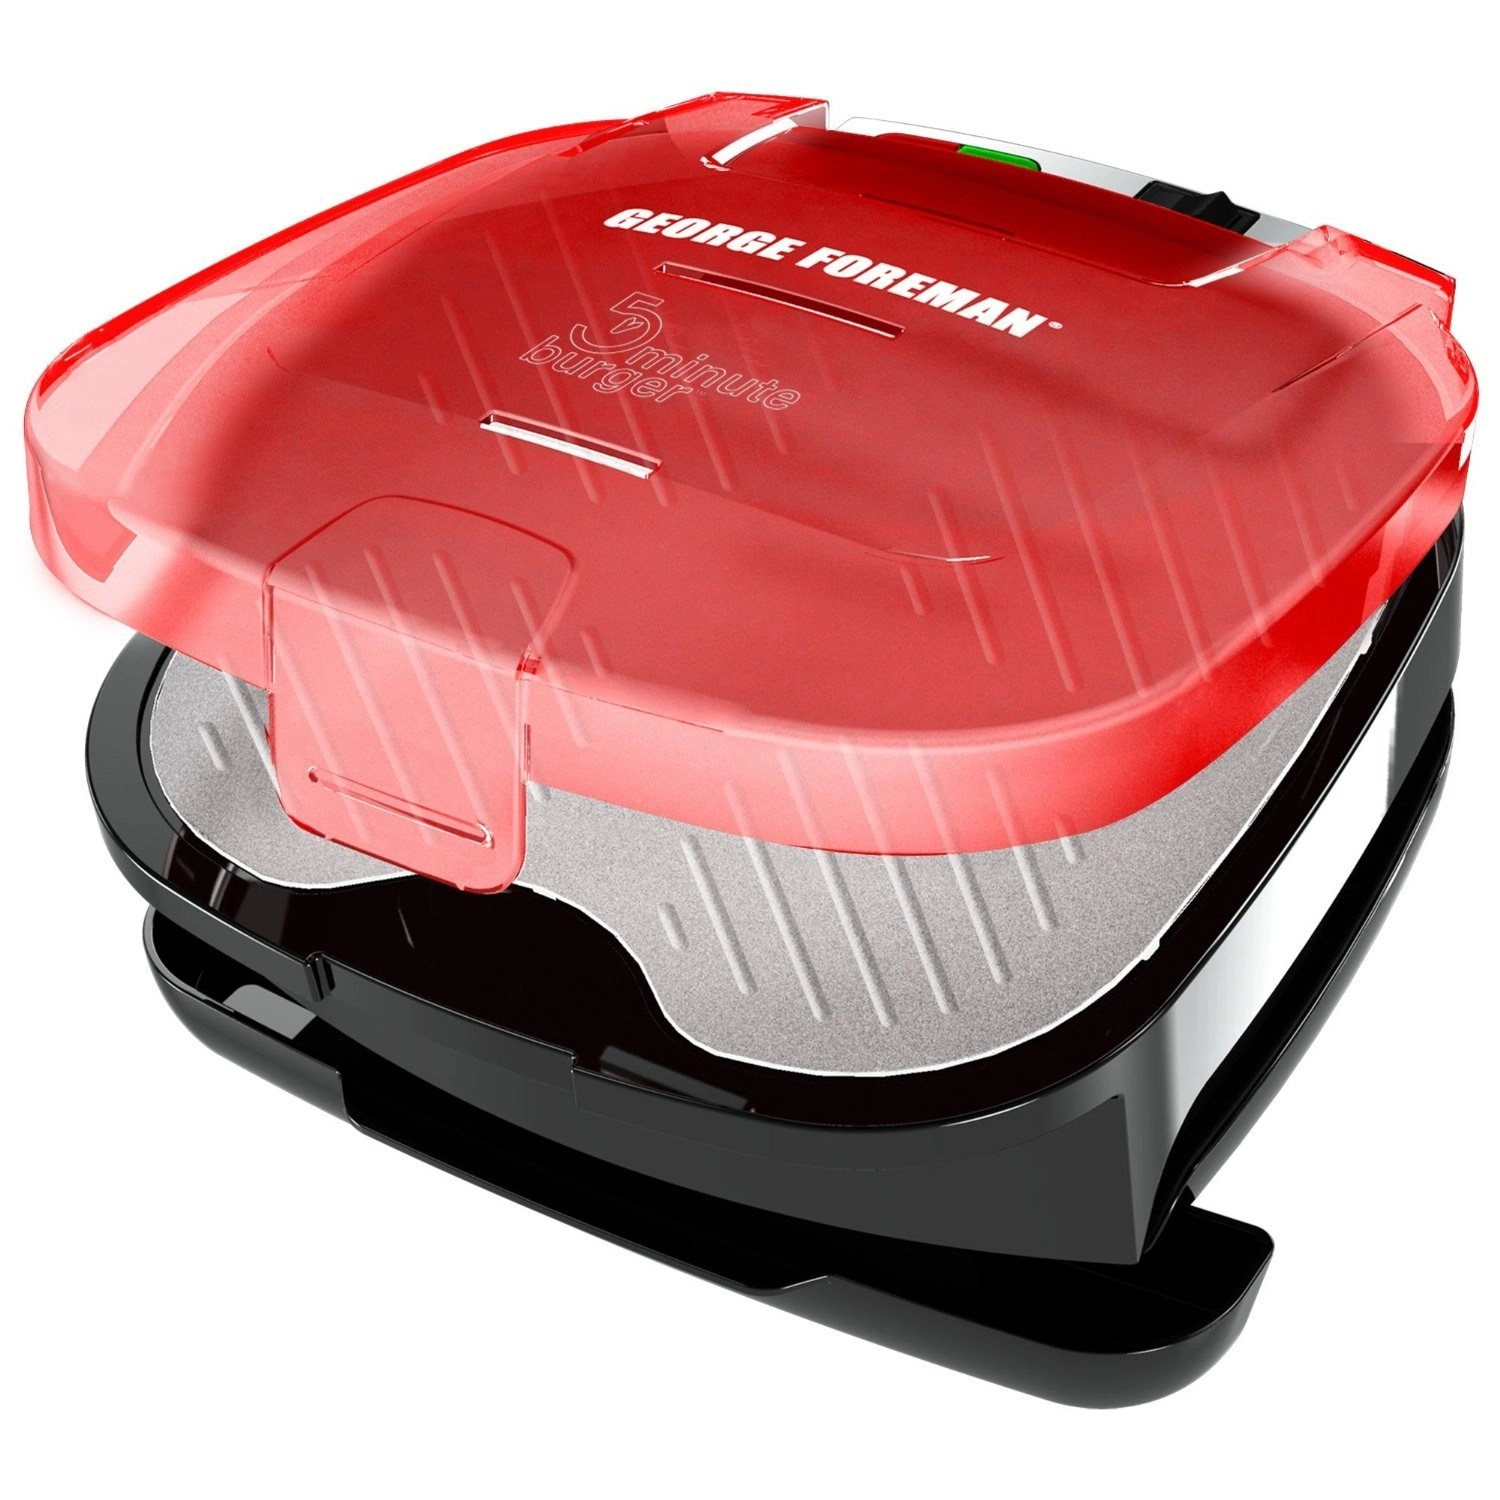 how to take apart a george foreman grill